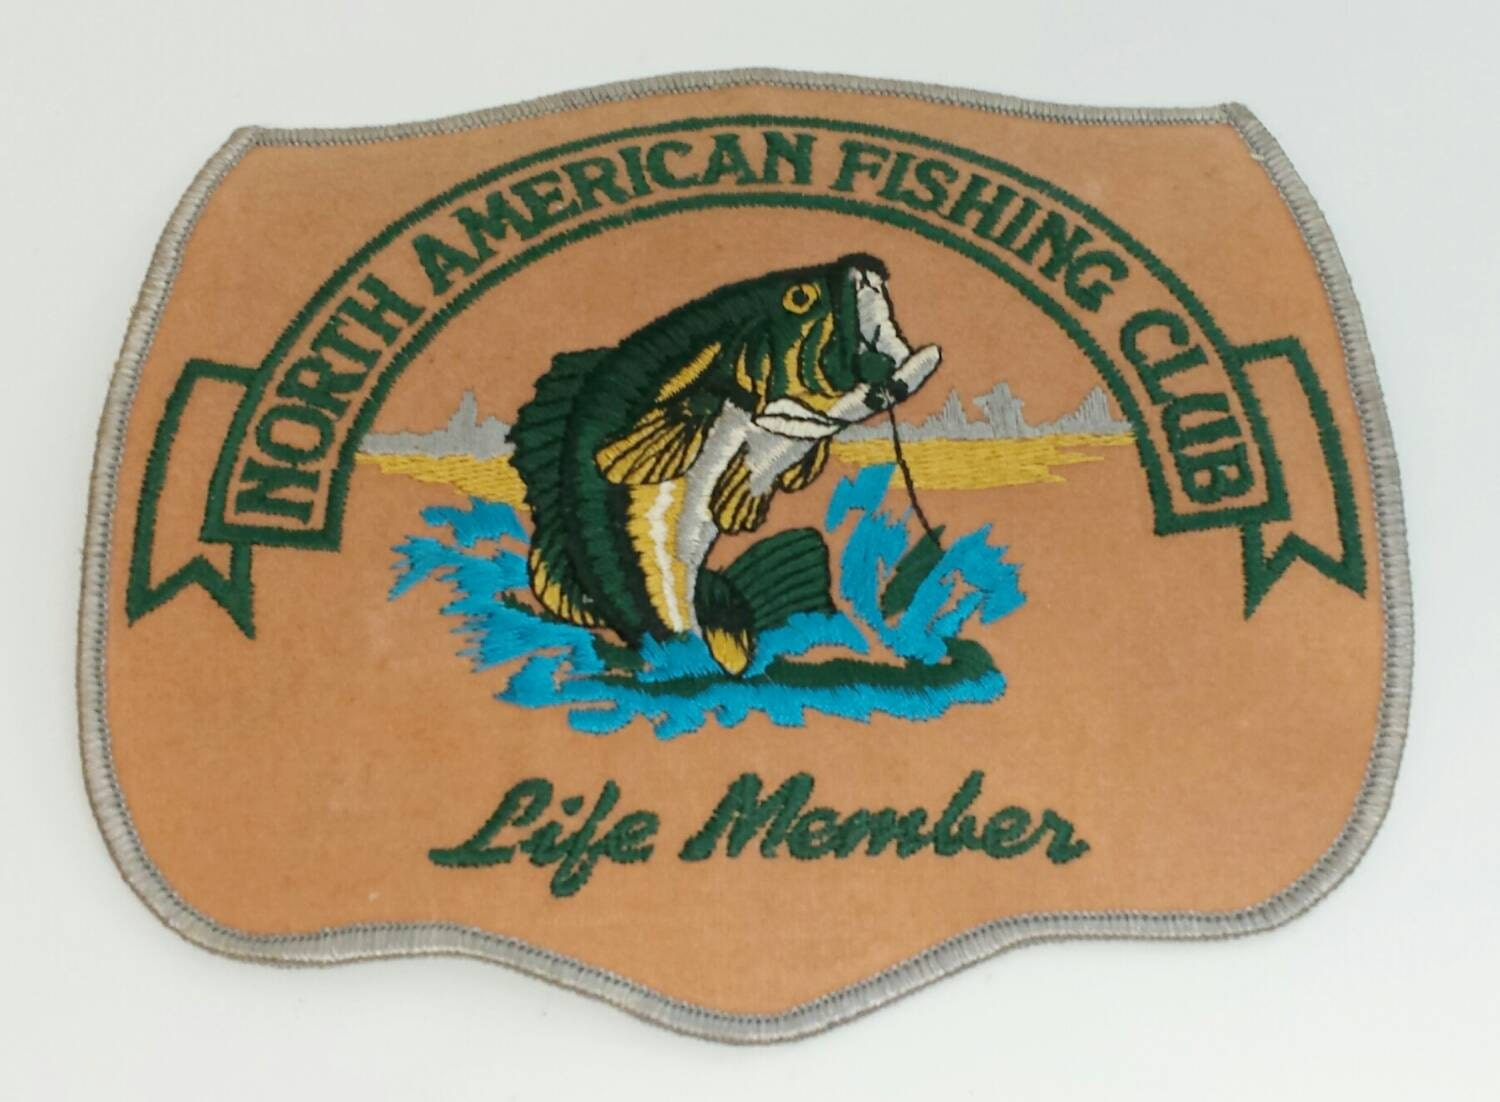 north american fishing club life member embroidered patch